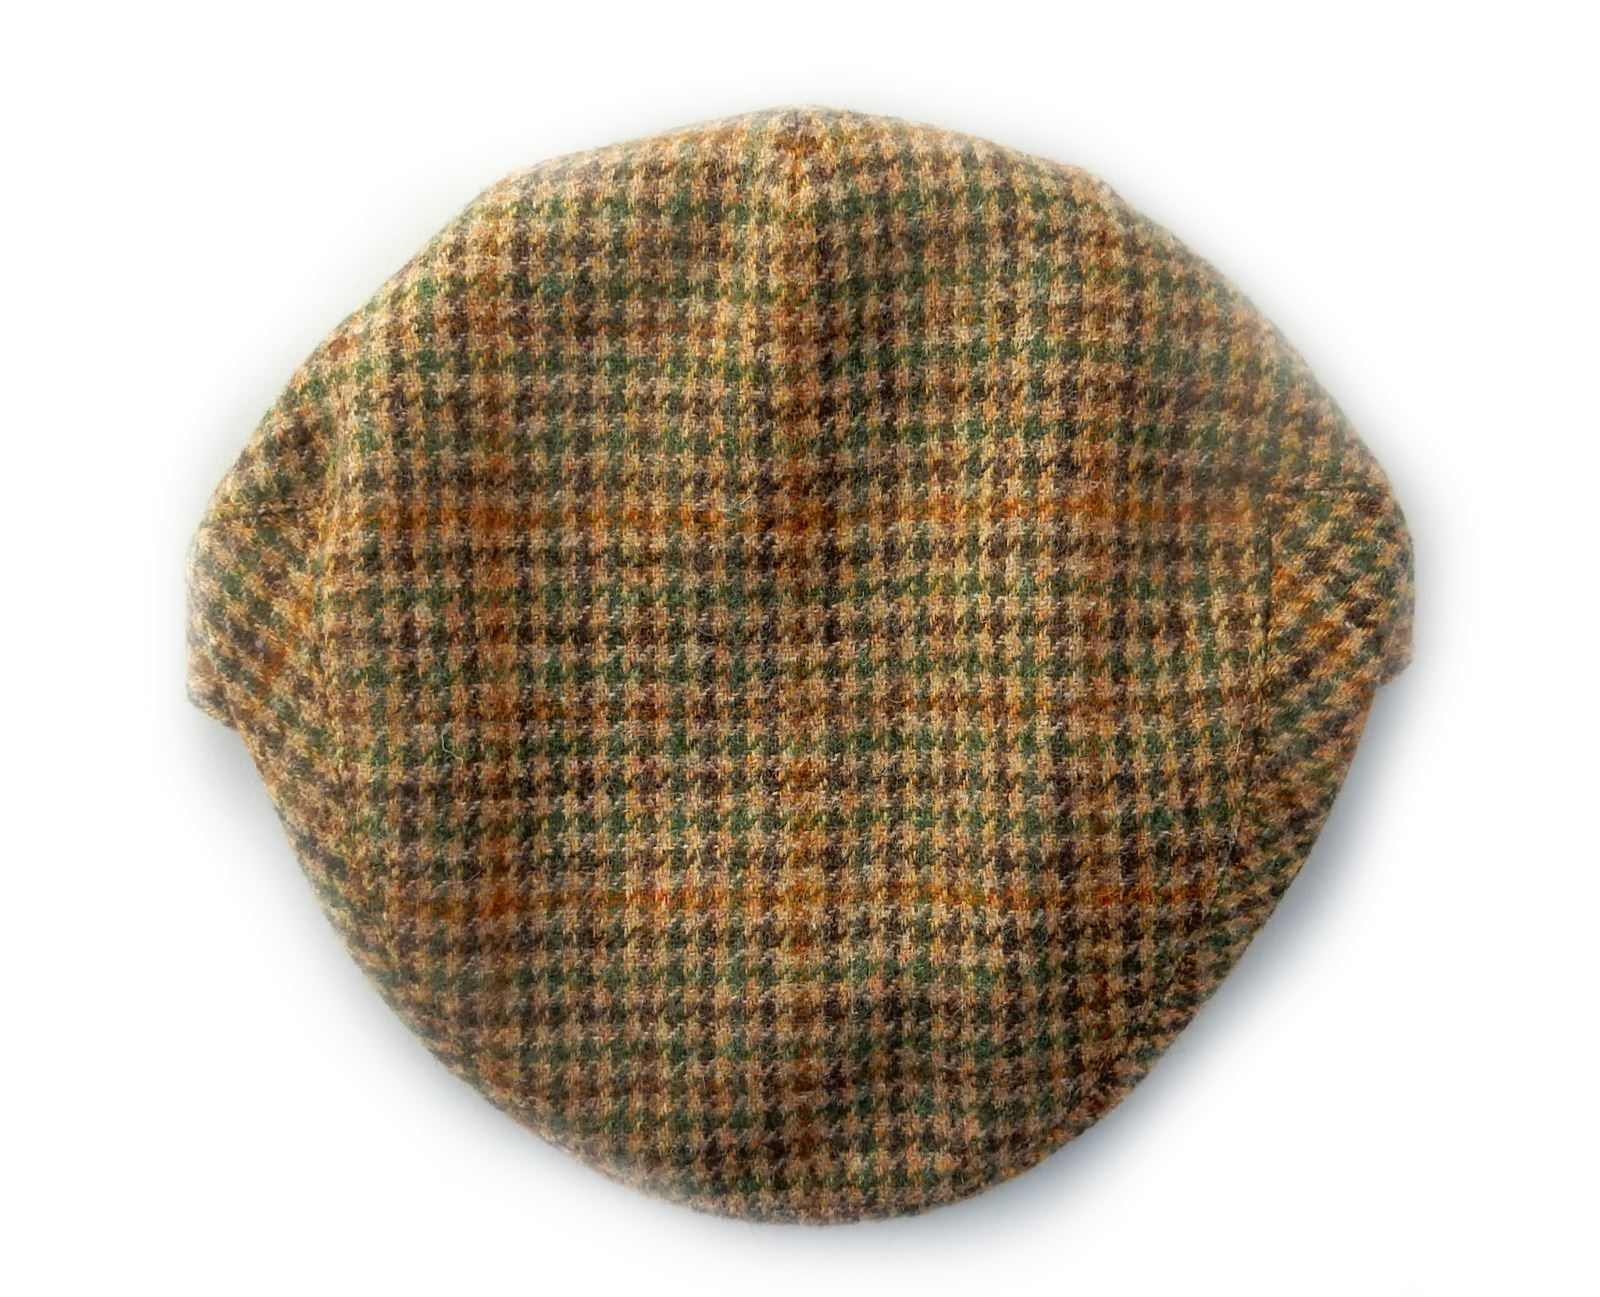 Yorkshire-hand-tailored-wool-tweed-flat-cap-Houndstooth-Beige-Green-BRITISH-MADE